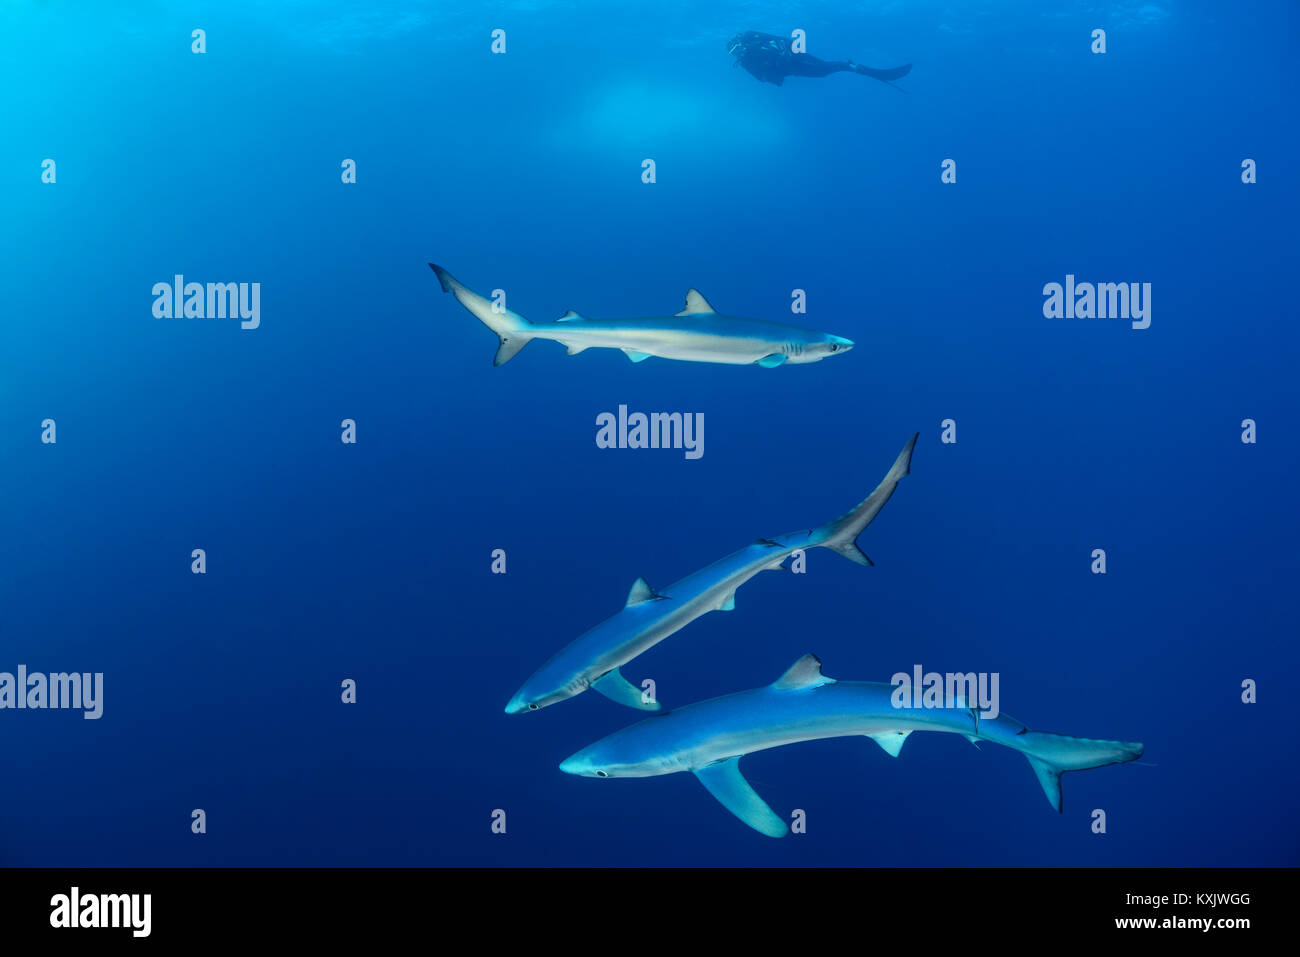 Blue sharks and scuba diver, Prionace glauca, Cape of Good Hope, South Africa, offshore in the Atlantic - Stock Image